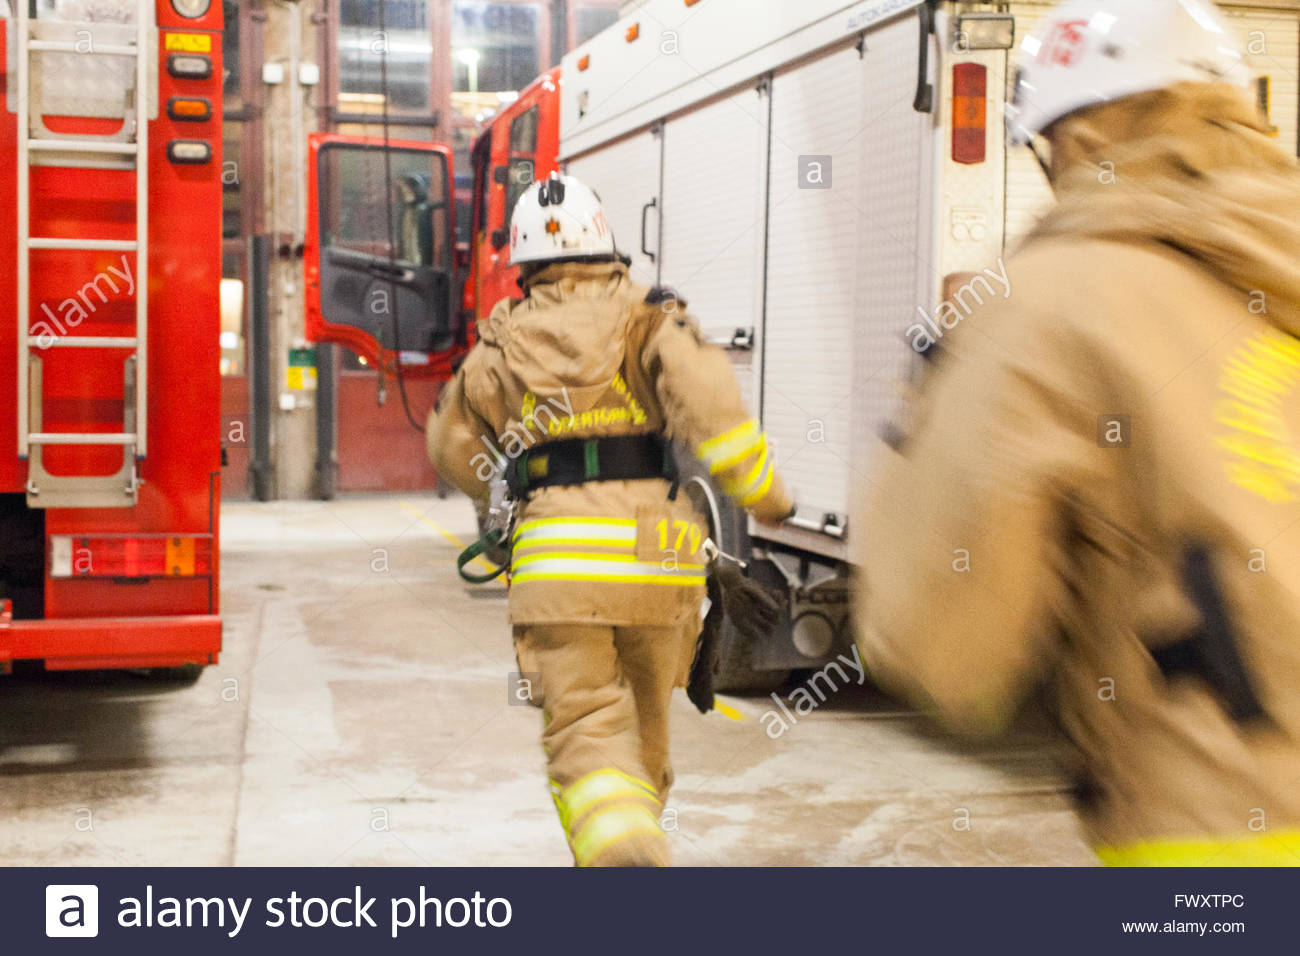 Firefighter running towards fire engine - Stock Image